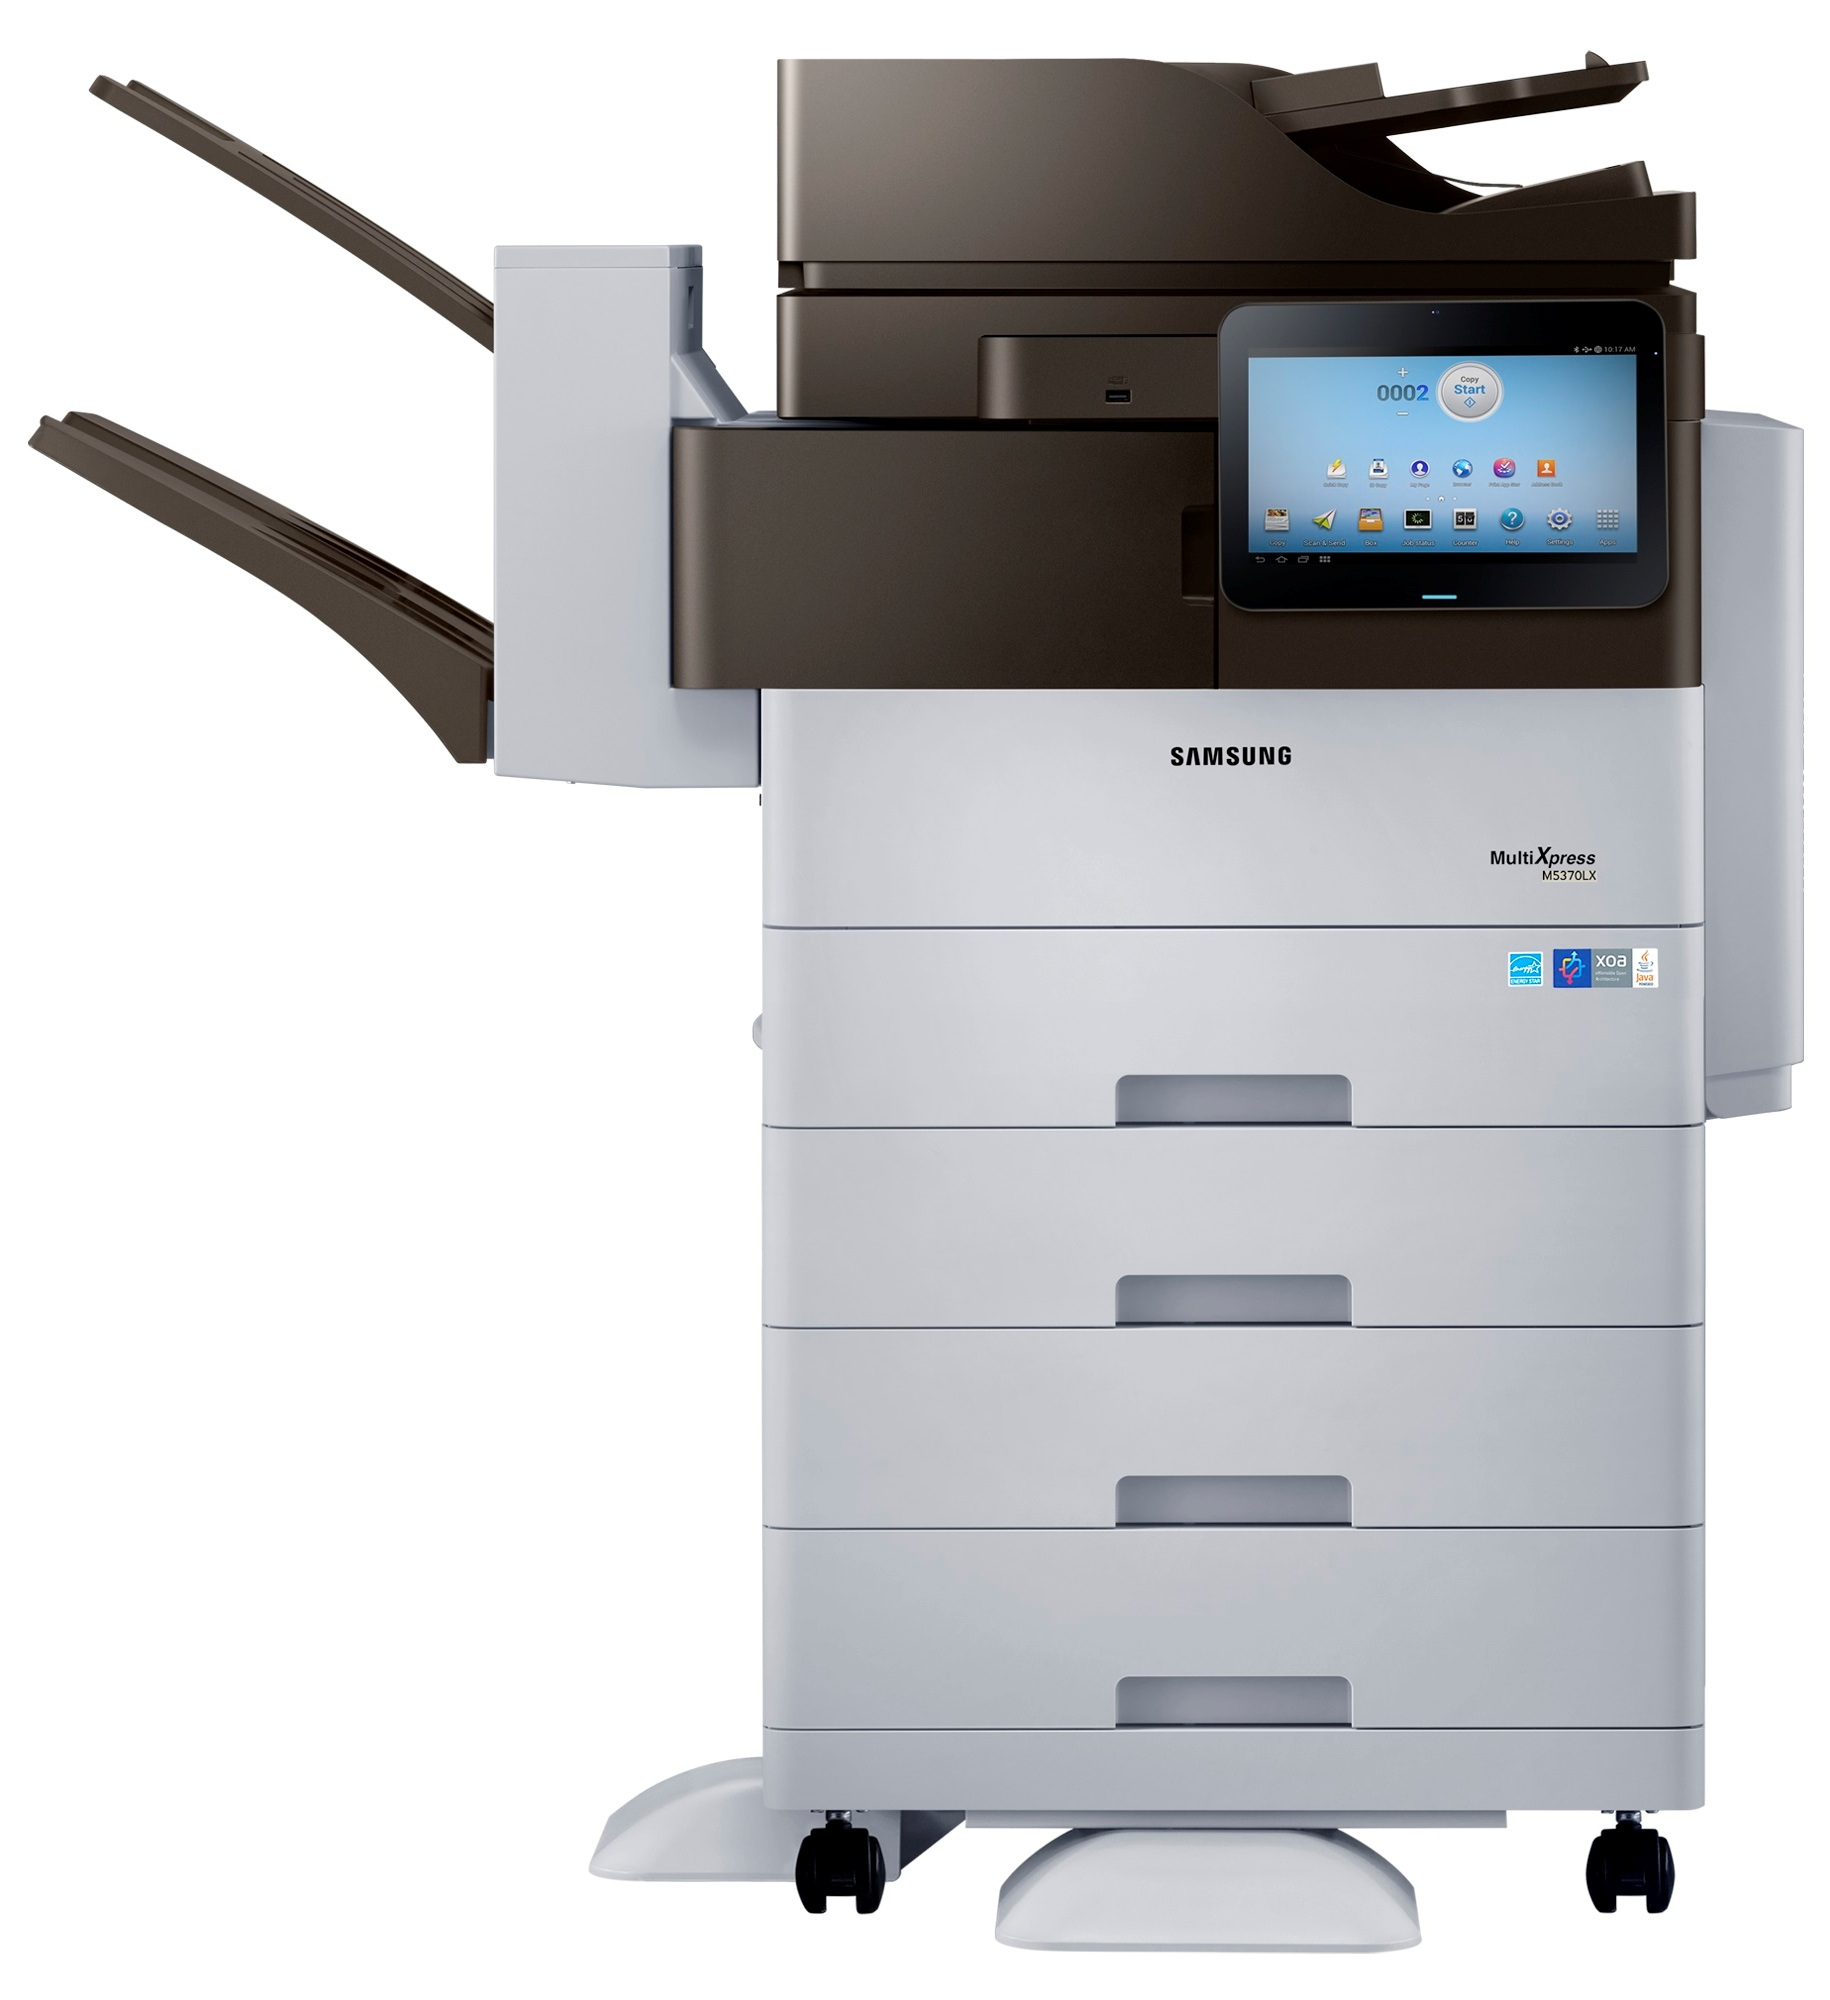 Smart MultiXpress M5370 series